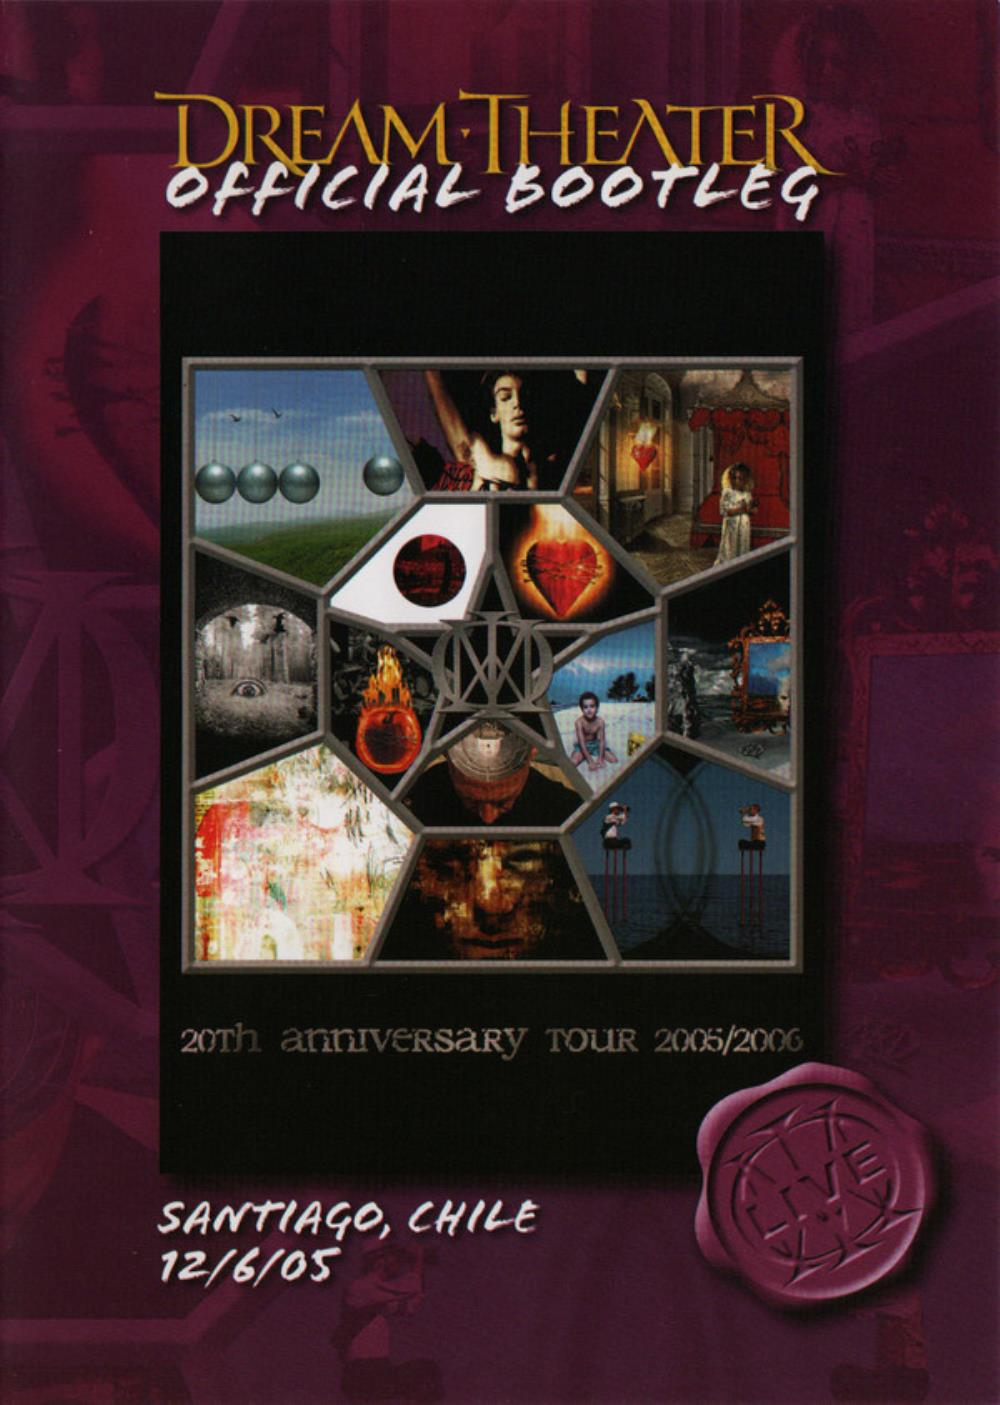 Dream Theater Official Bootleg: Santiago, Chile 12/6/05 (20th Anniversary Tour 2005/2006) album cover